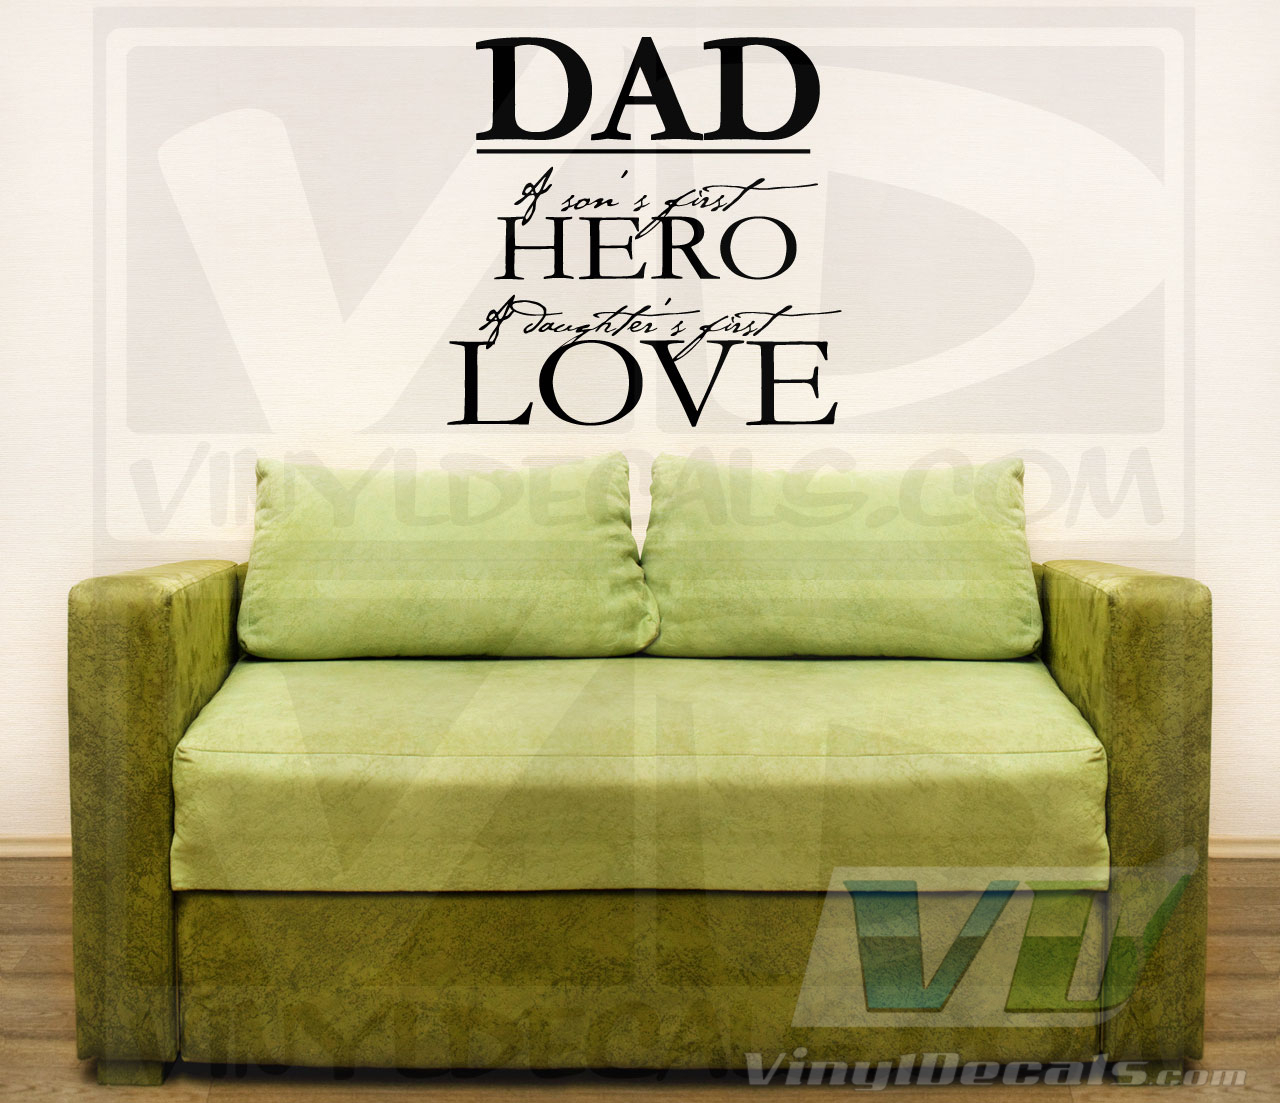 Dad And Daughter Quotes Wallpapers: Dad And Daughter Quotes. QuotesGram